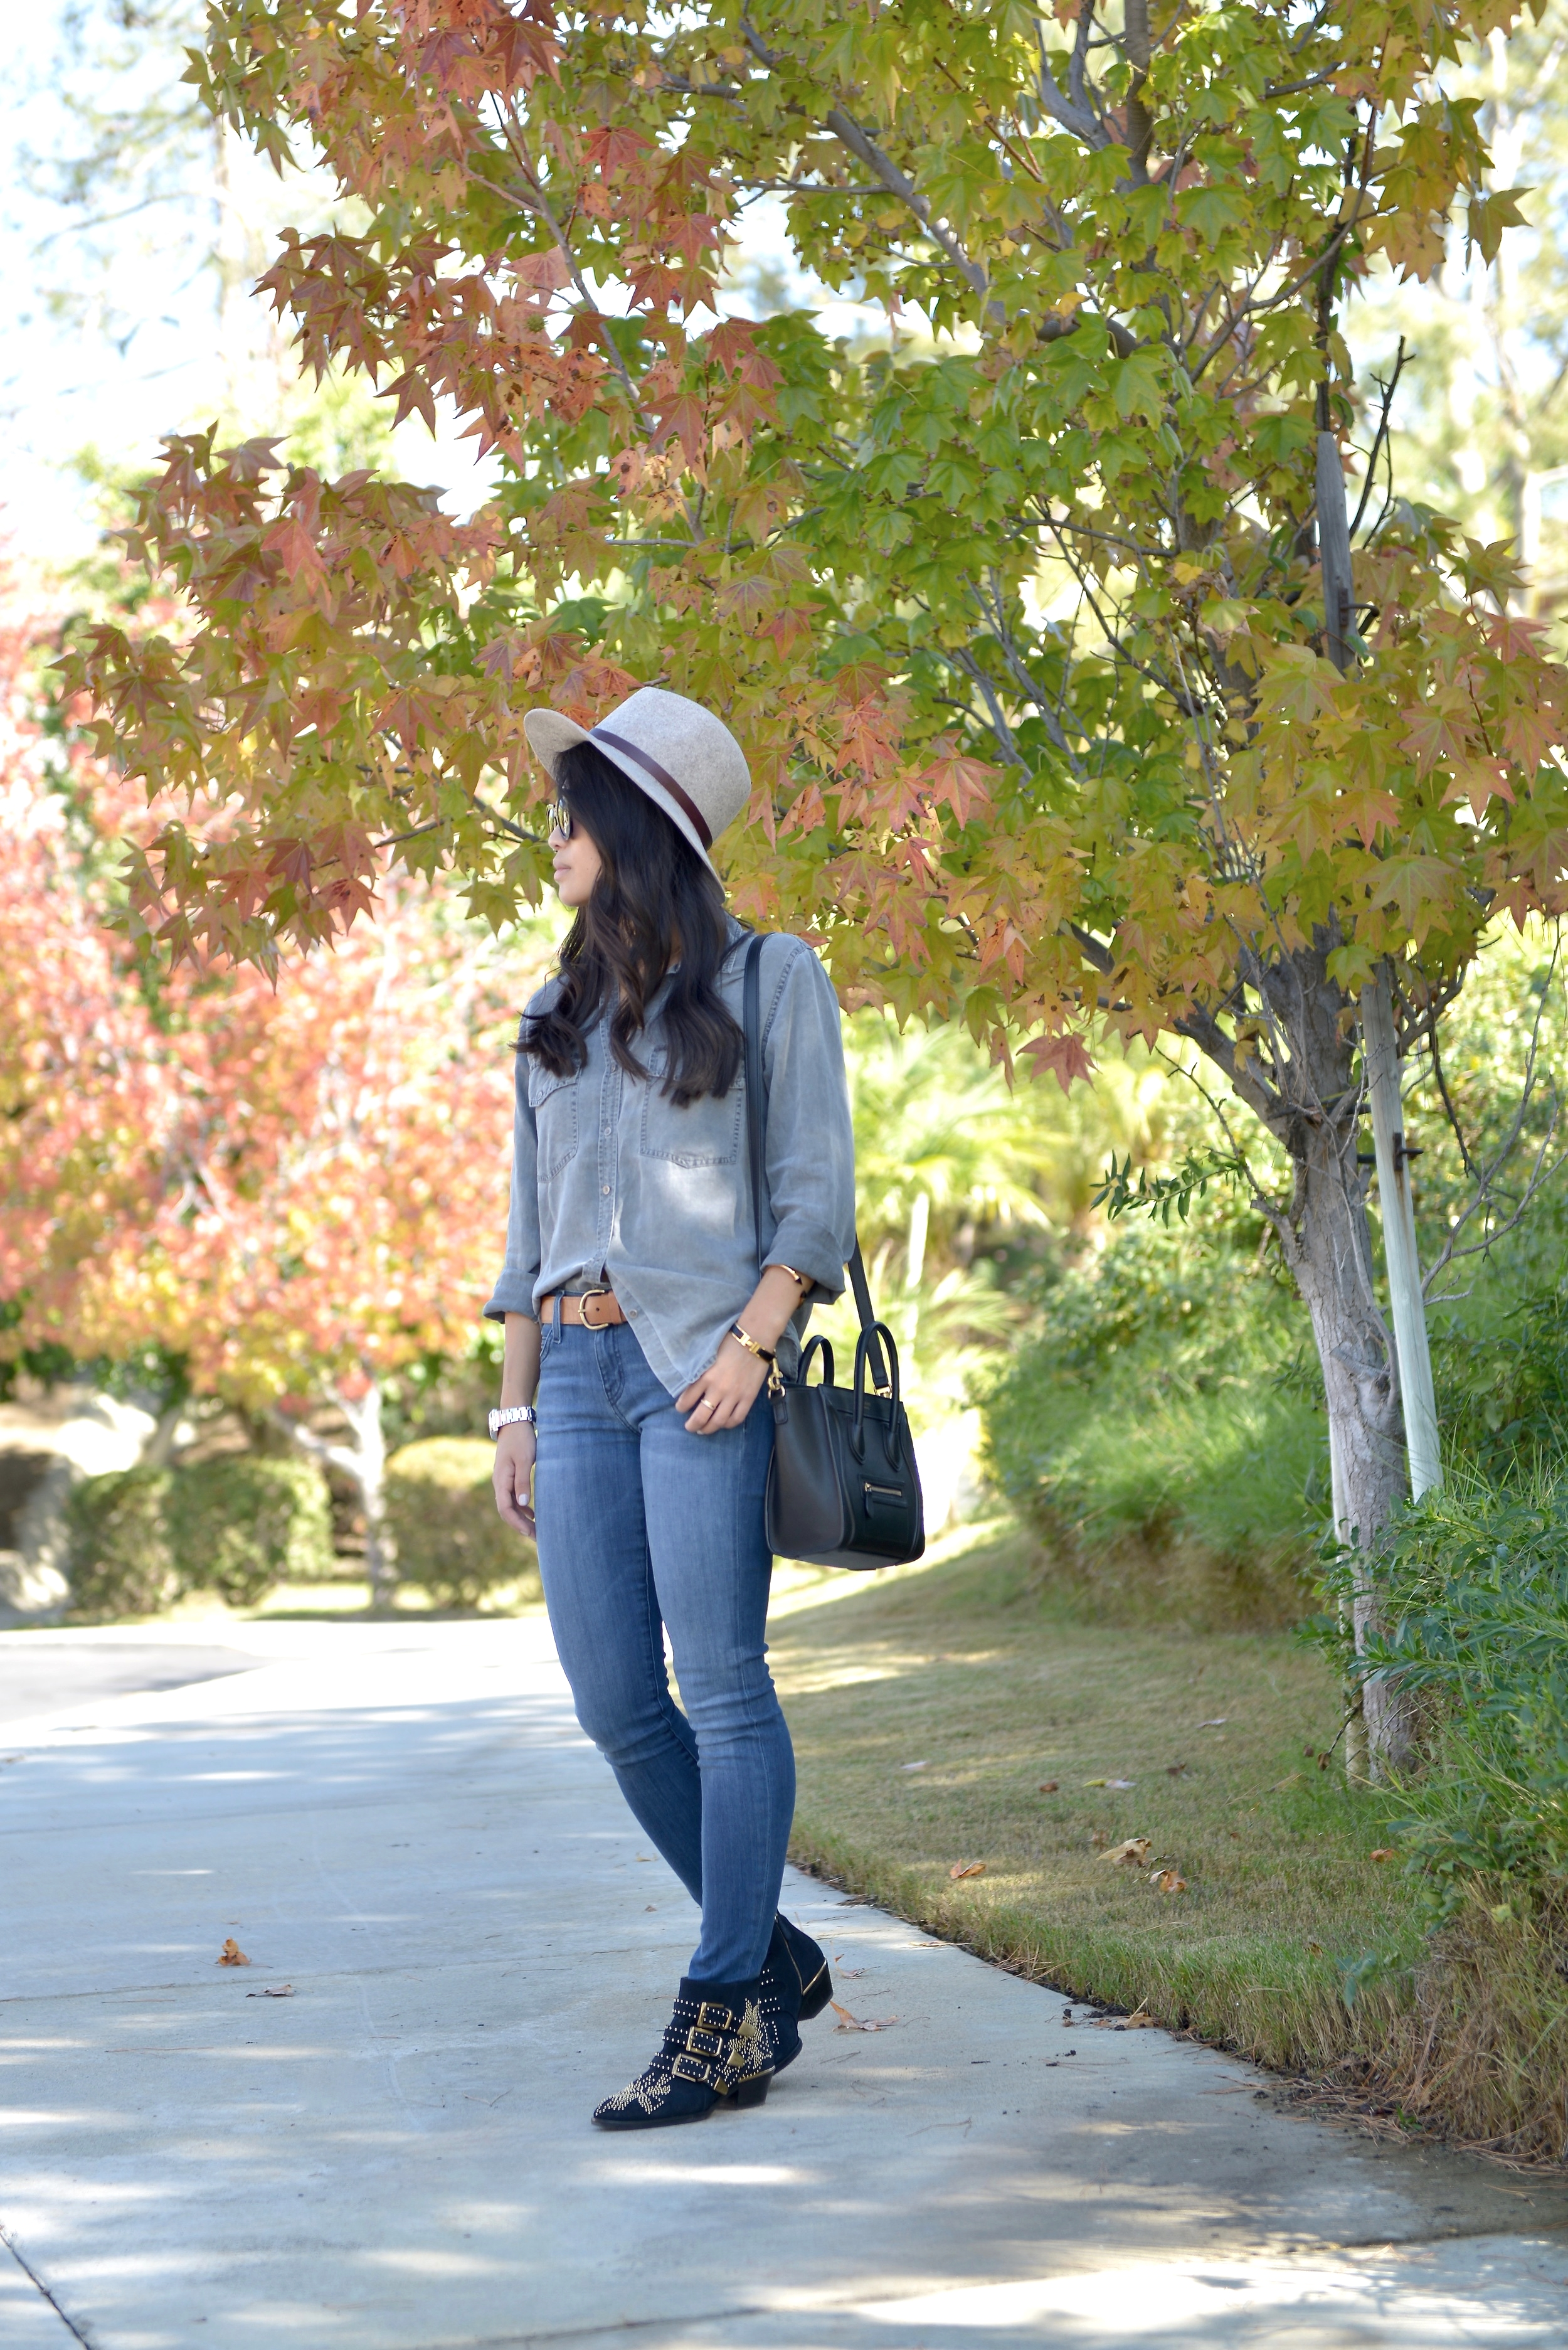 Just Goh With It-Outfit-Current-Elliott-Shirt-Blue-Jeans-Chloe-Susanna-Ankle-Boots-5.jpg